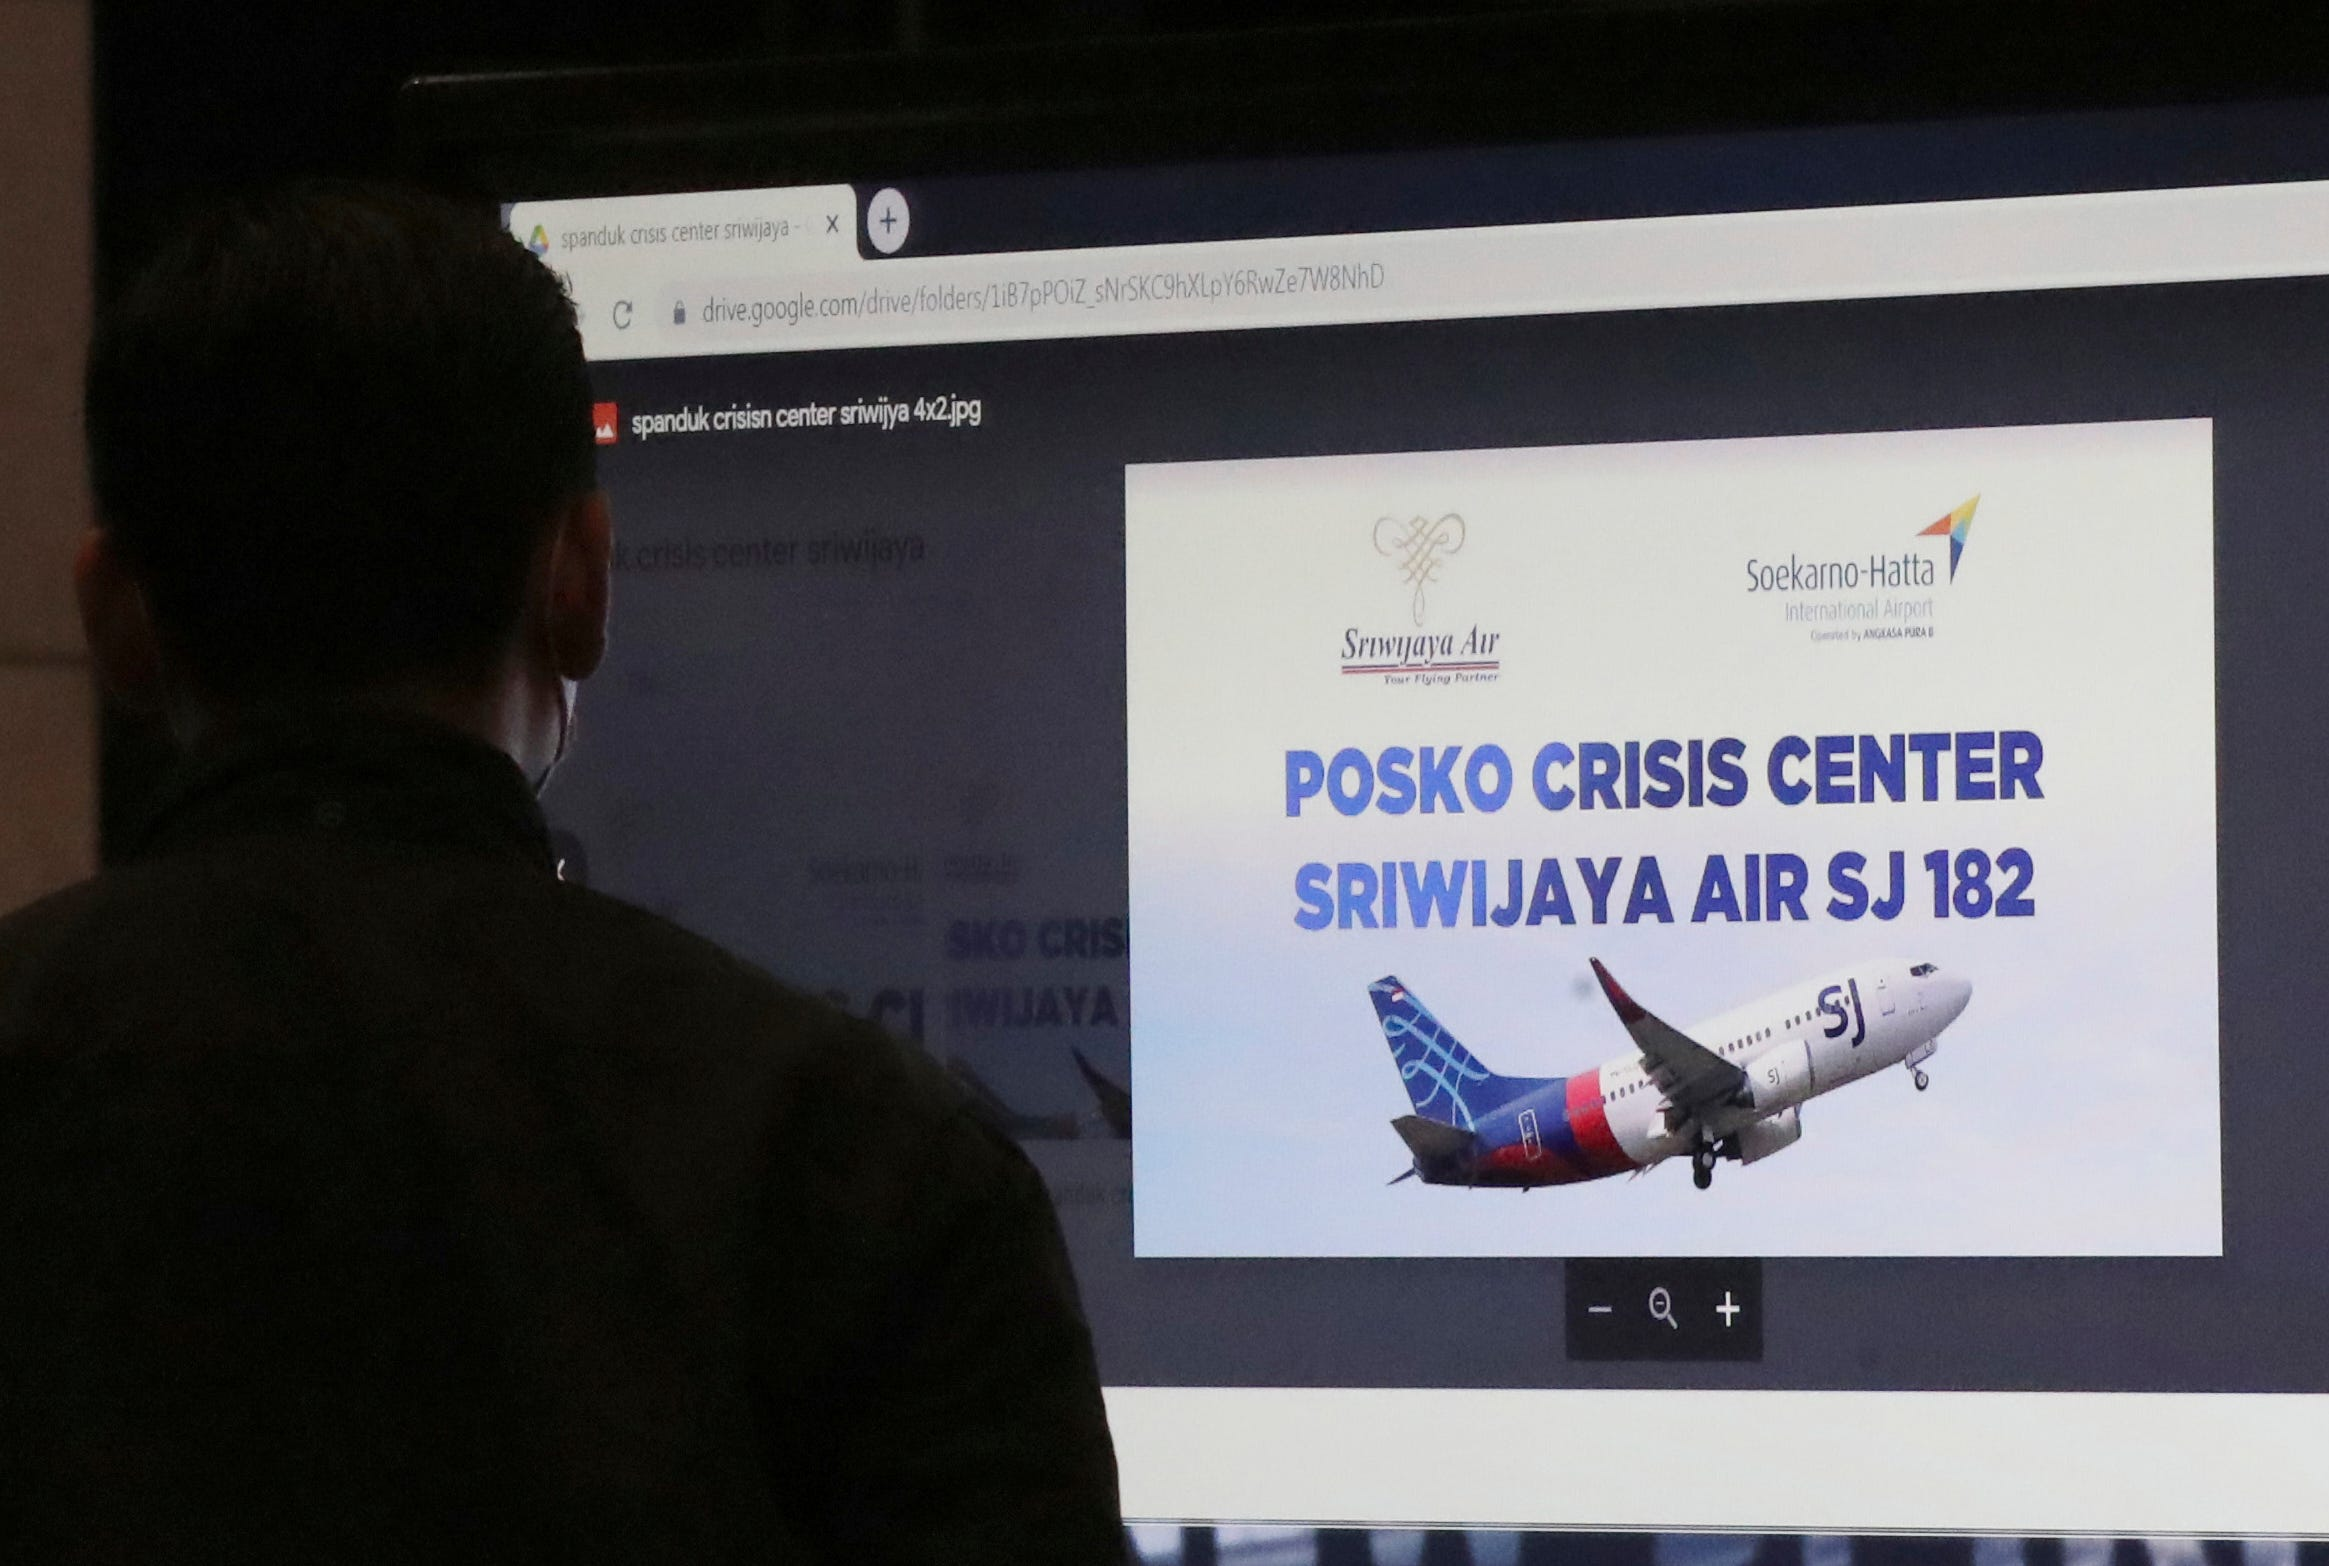 Boeing passenger jet is missing in Indonesia after takeoff with search underway for Sriwijaya Air flight 182